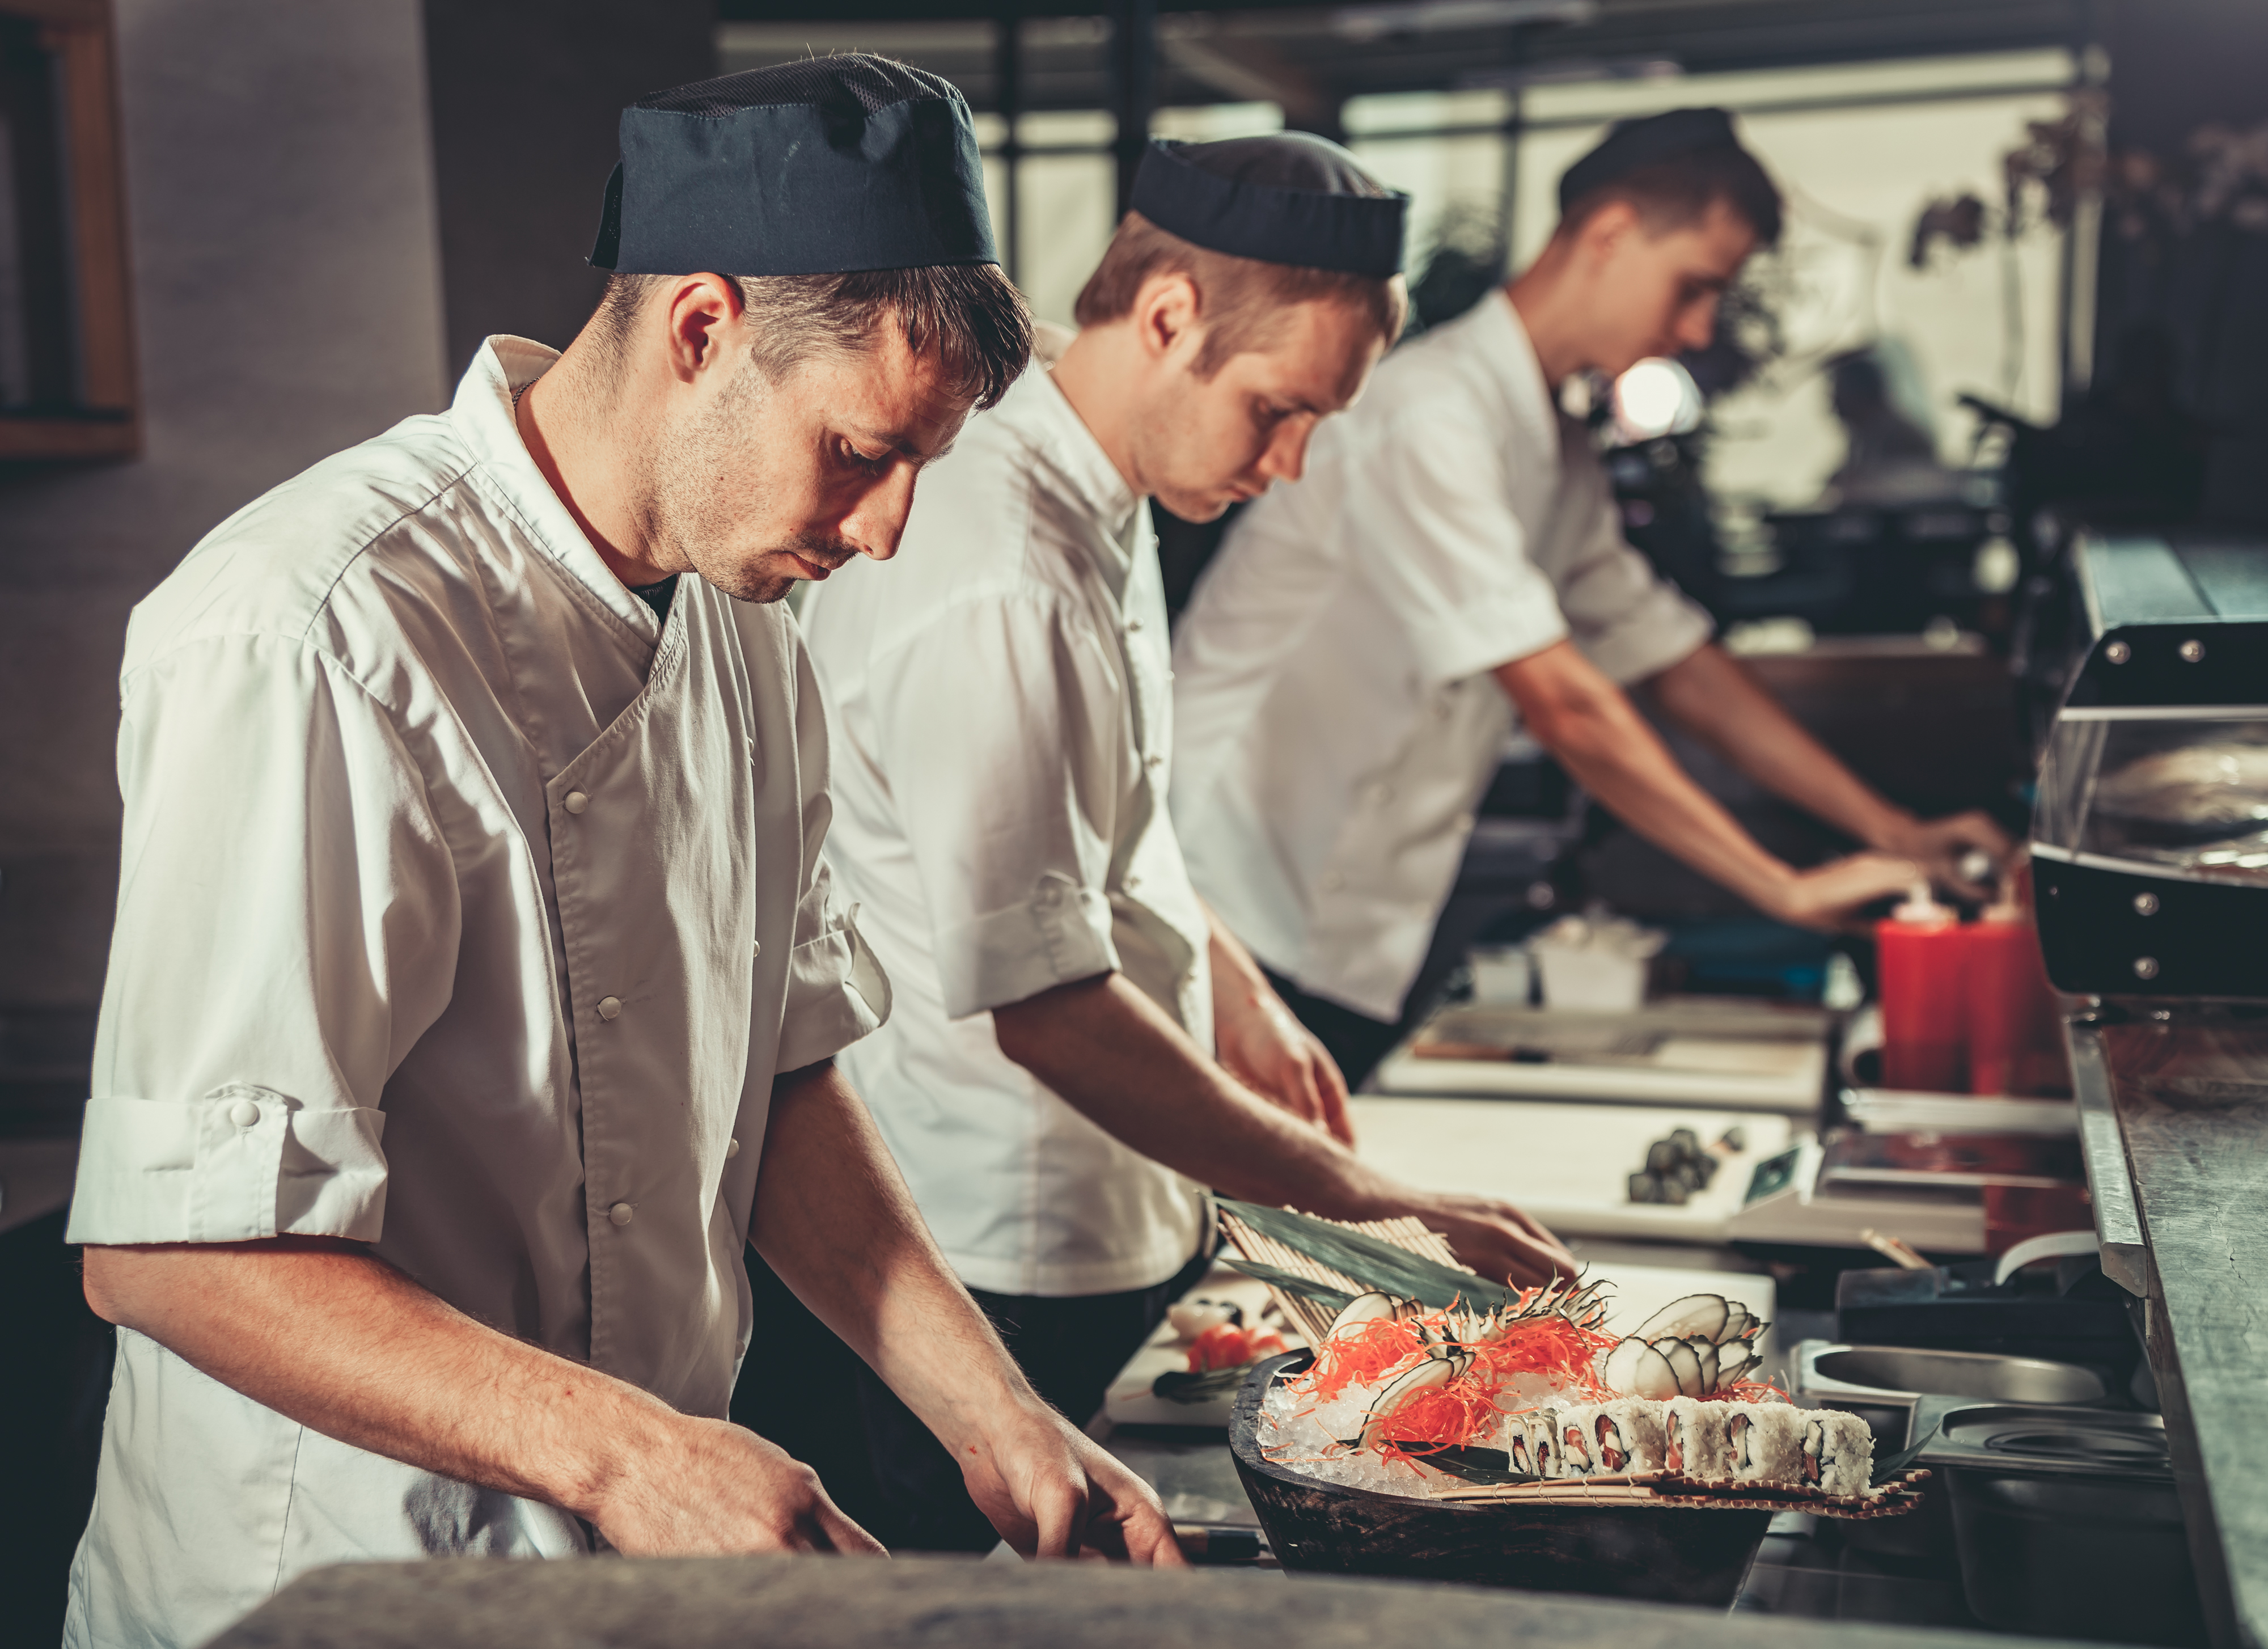 Chefs preparing sushi in kitchen